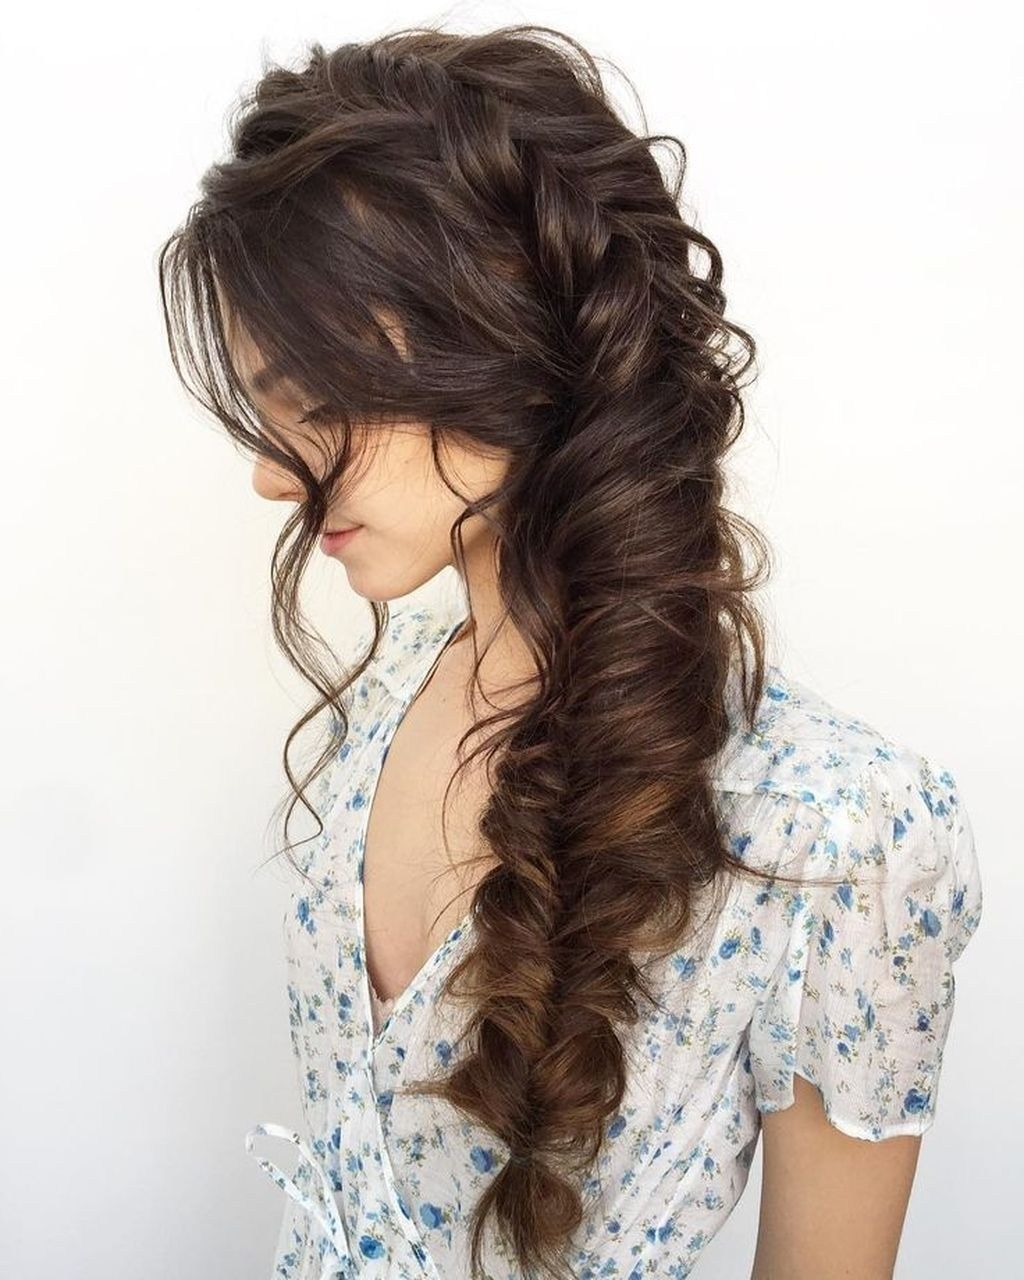 Awesome Side Braid Hairstyles Ideas For Long Hair06 #sidebraidhairstyles Awesome Side Braid Hairstyles Ideas For Long Hair06 #sidebraidhairstyles